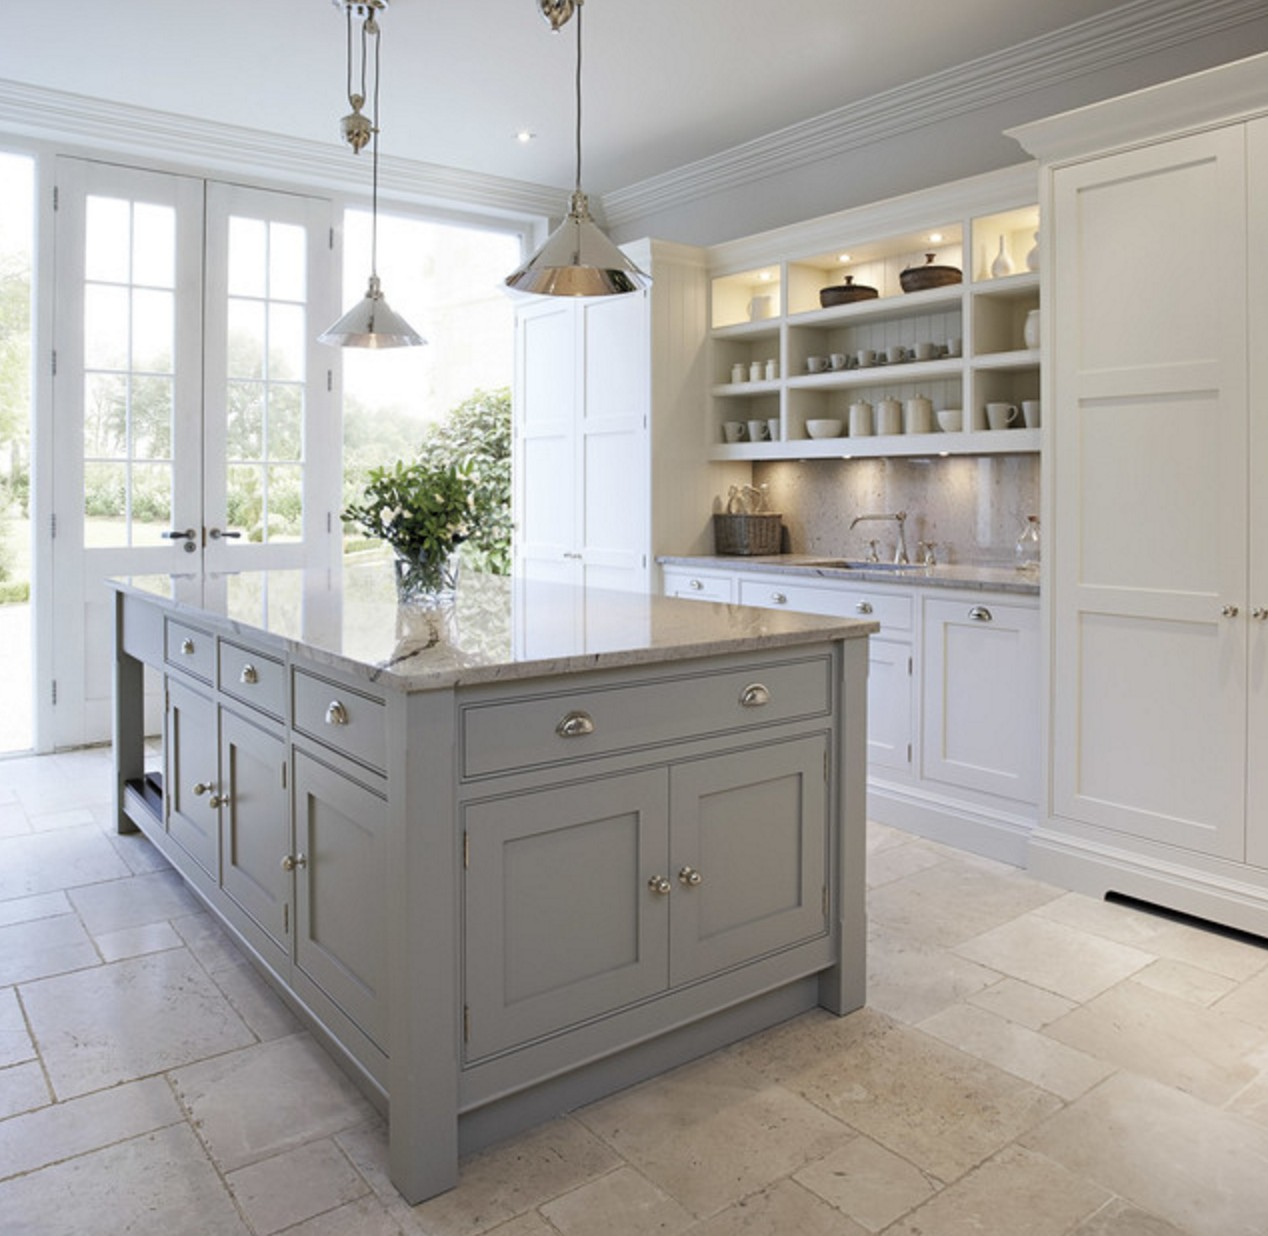 Cabinet Pulls For Shaker Cabinets